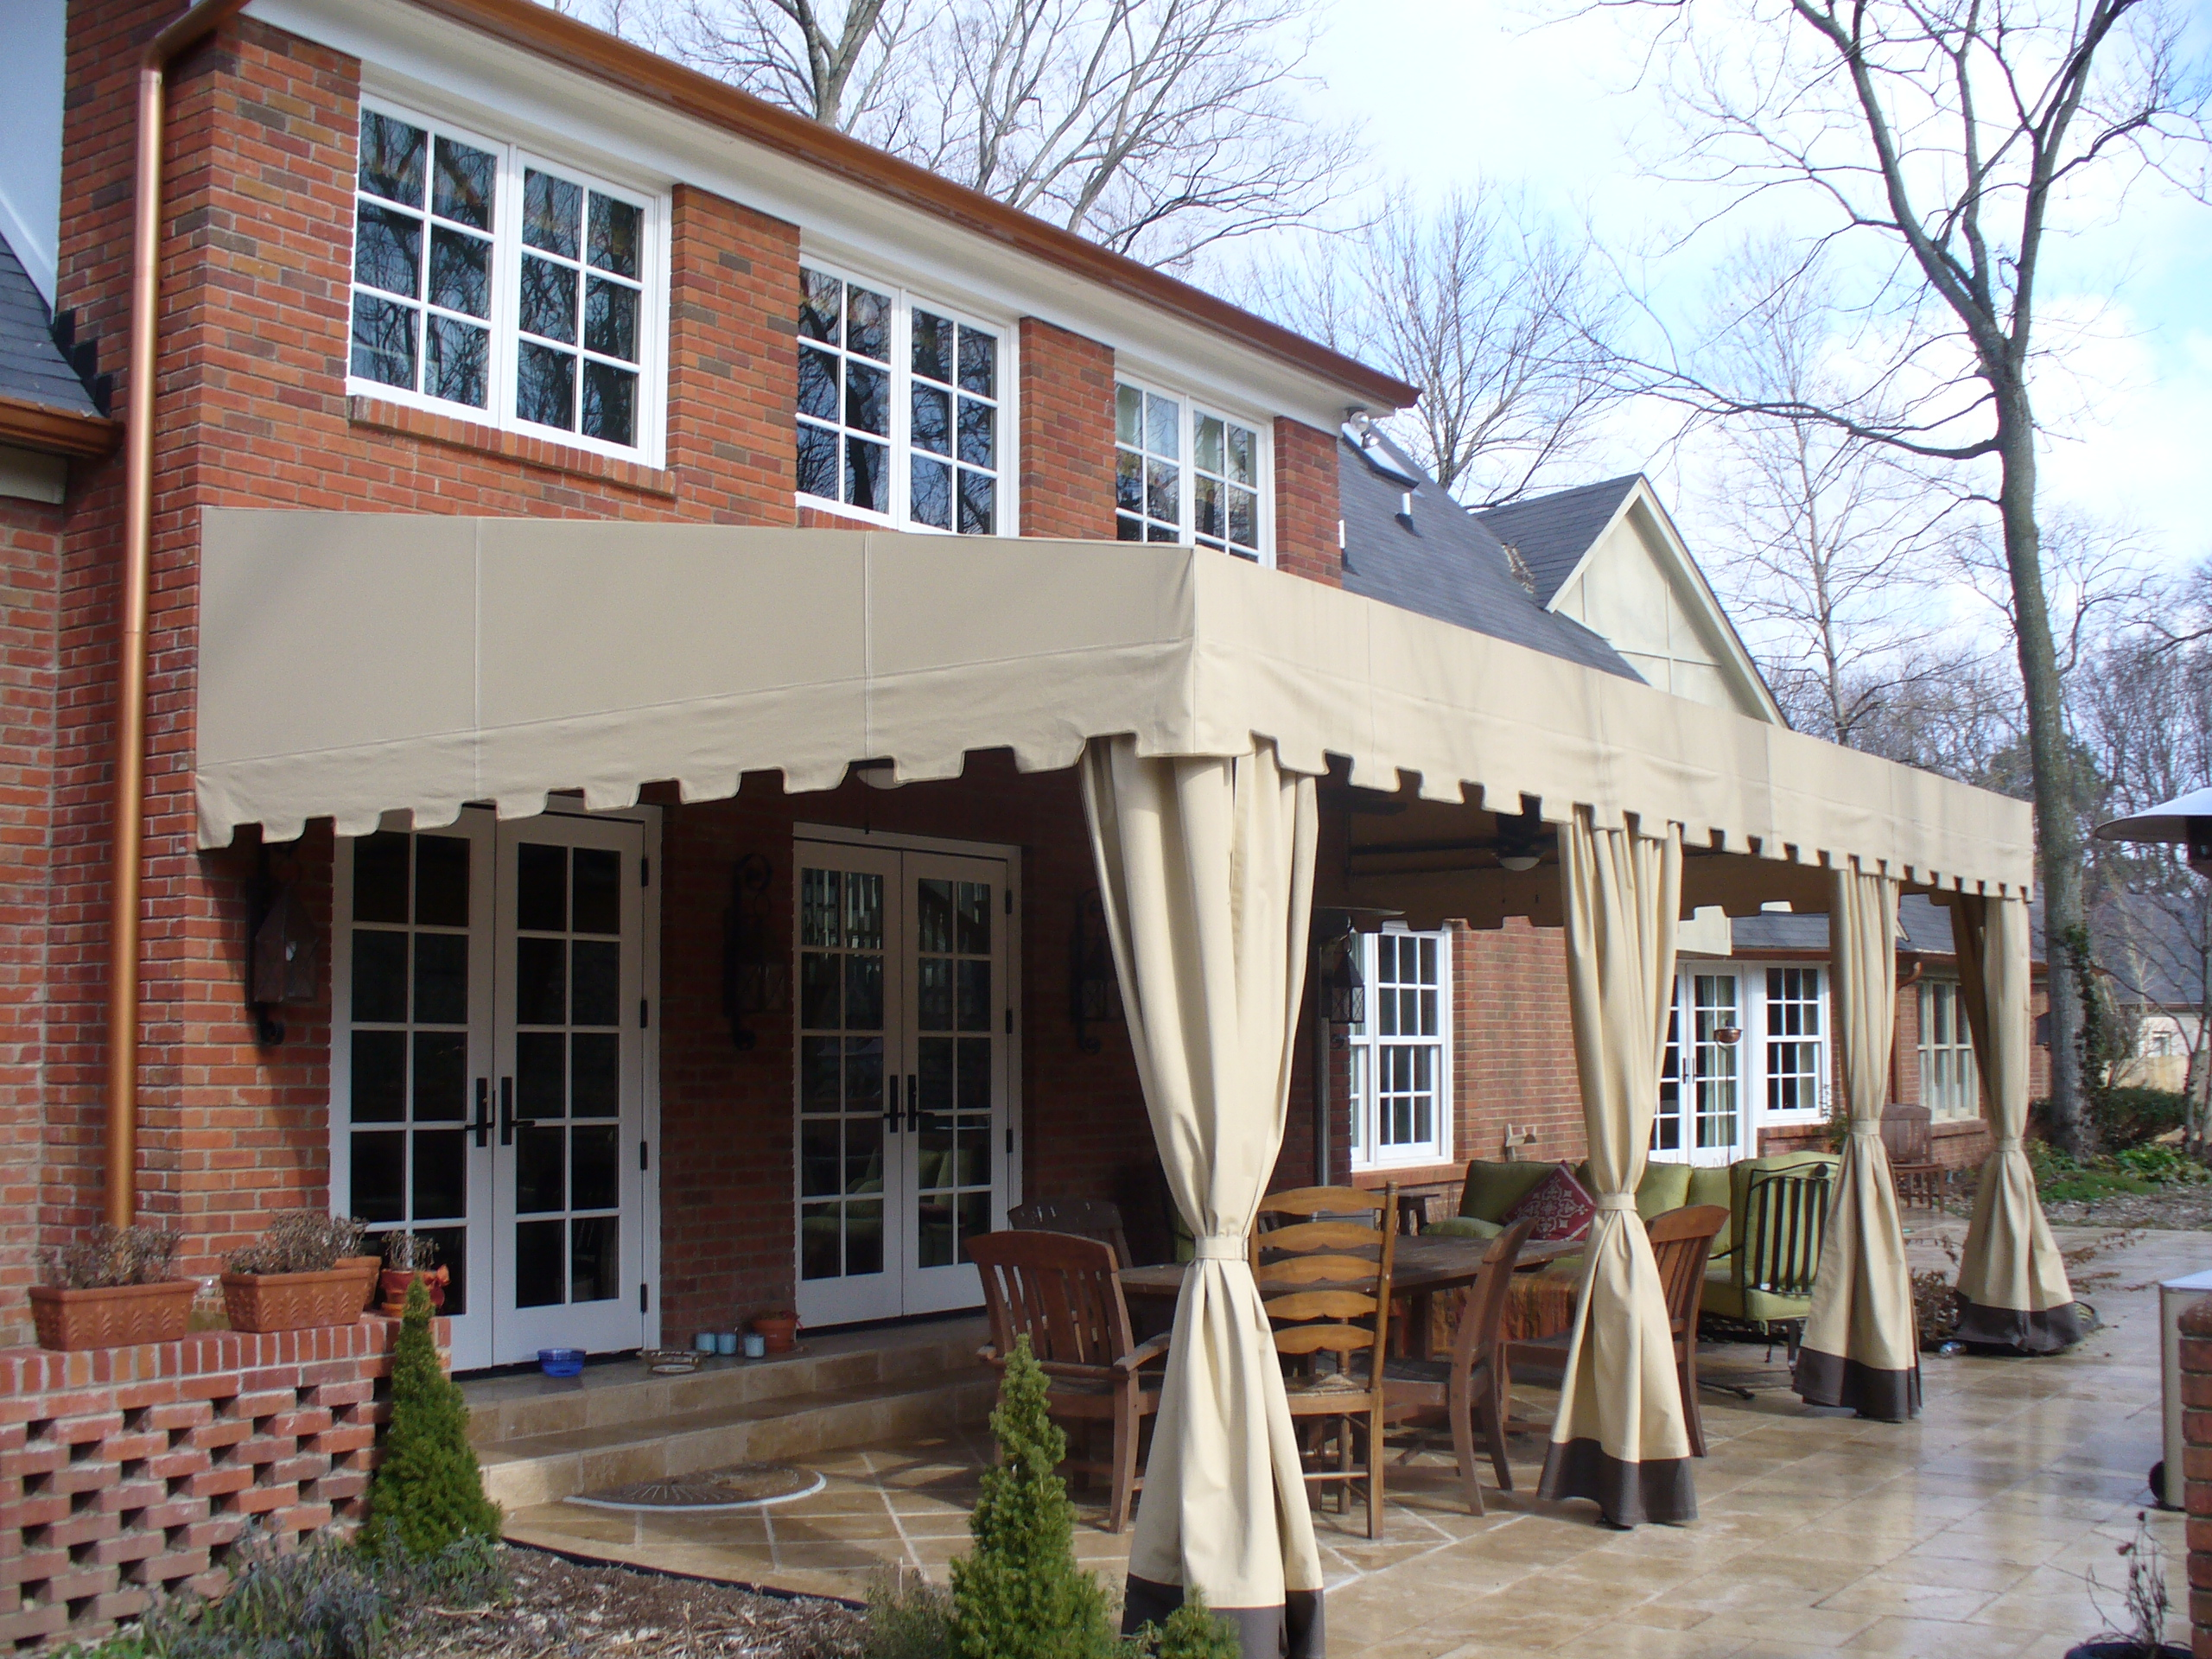 me image awning shelters and broma tents edmonton tent full for